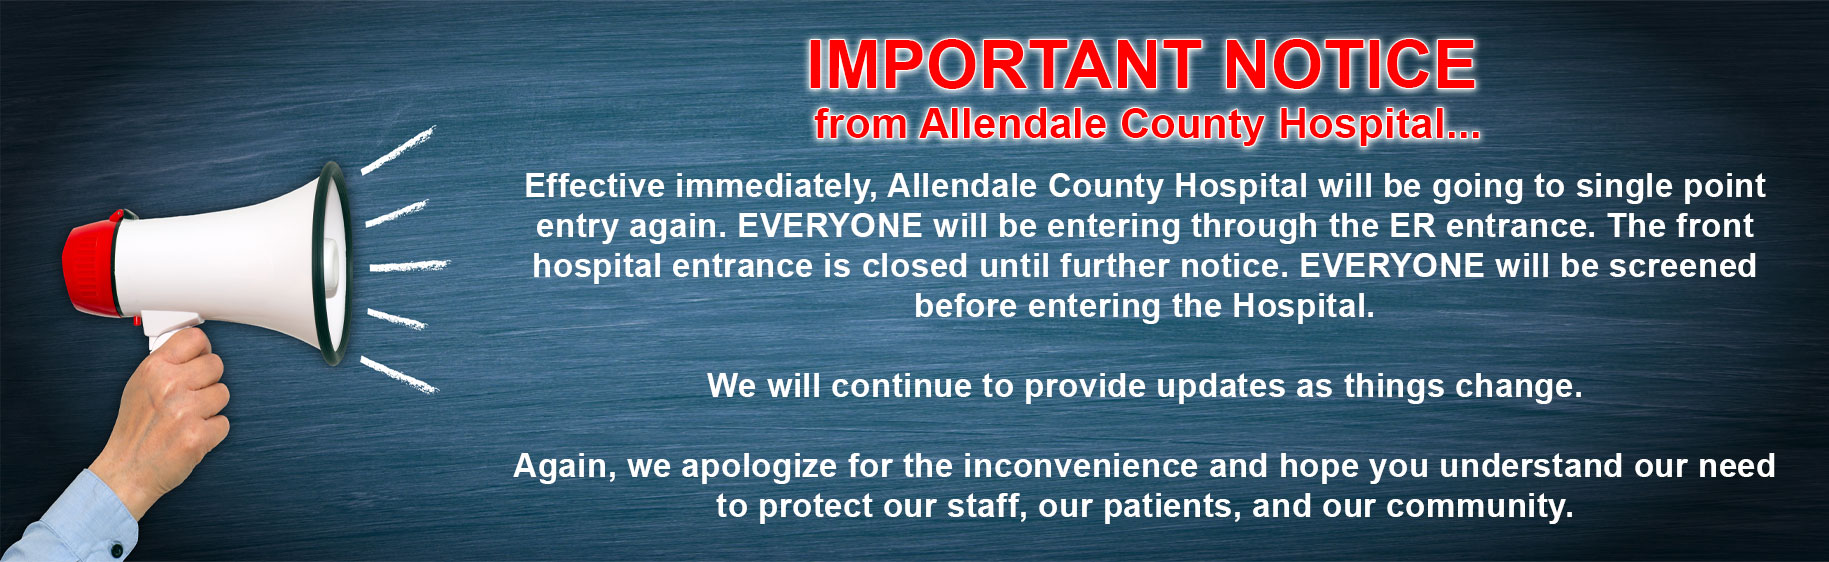 IMPORTANT NOTICE from Allendale County Hospital...  Effective immediately, Allendale County Hospital will be going to single point entry again. EVERYONE will be entering through the ER entrance. The front hospital entrance is closed until further notice. EVERYONE will be screened before entering the Hospital.  We will continue to provide updates as things change.  Again, we apologize for the inconvenience and hope you understand our need to protect our staff, our patients, and our community.